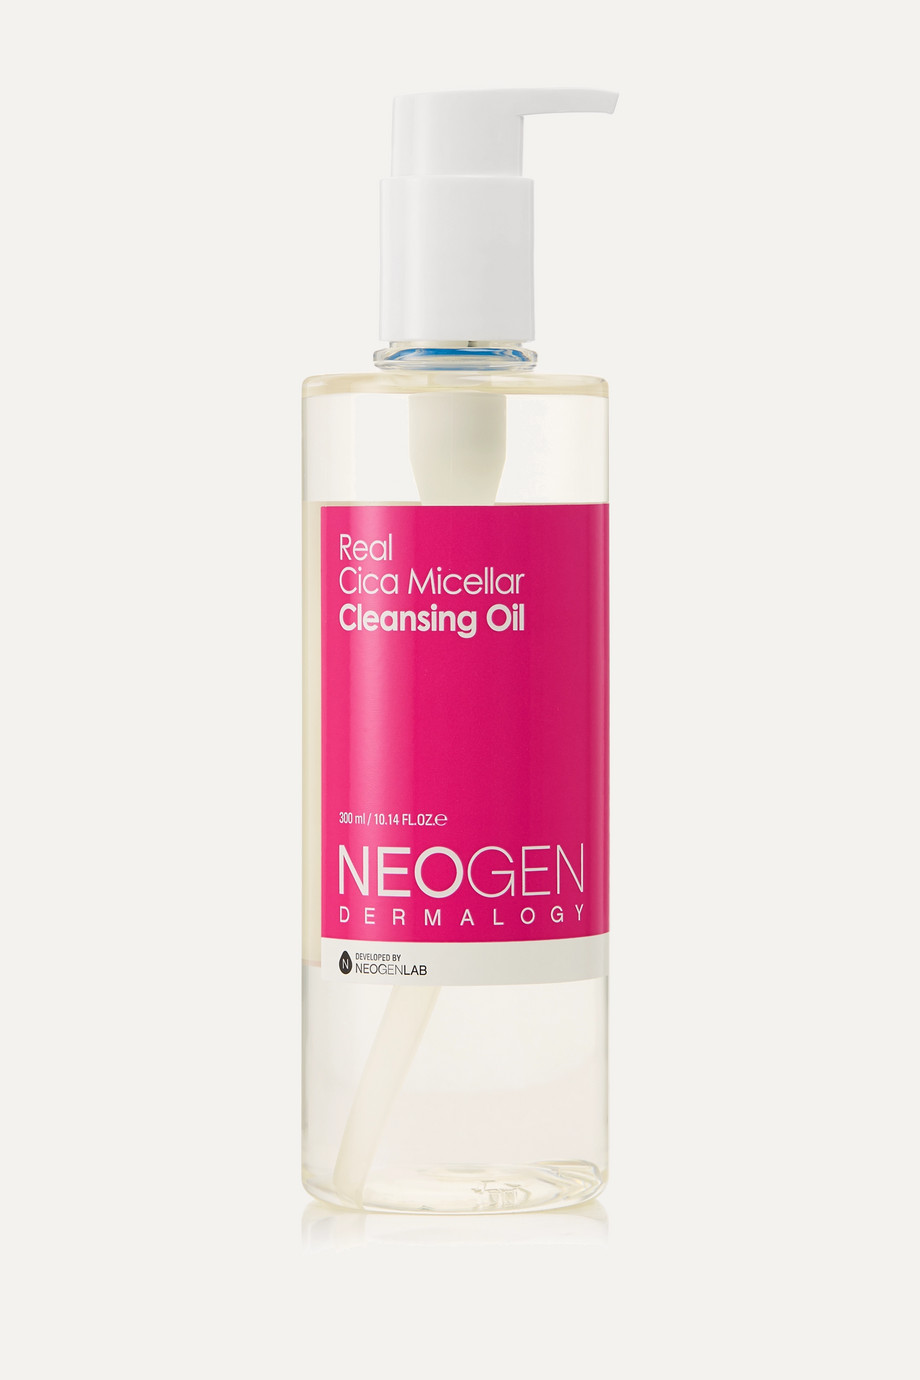 Neogen Real Cica Micellar Cleansing Oil, 300 ml – Reinigungsöl